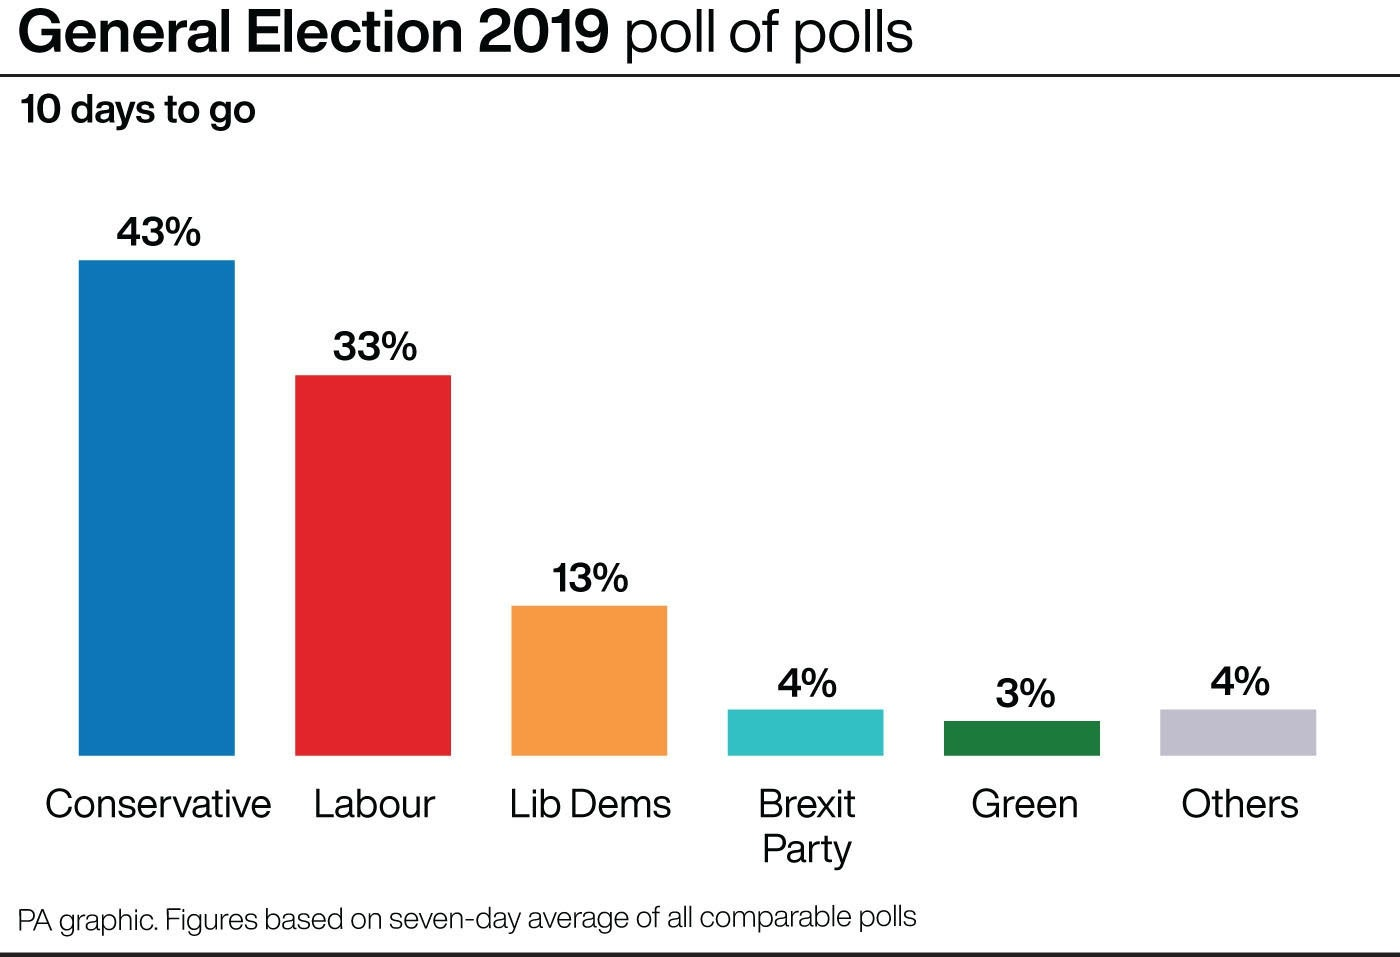 General election 2019 poll of polls